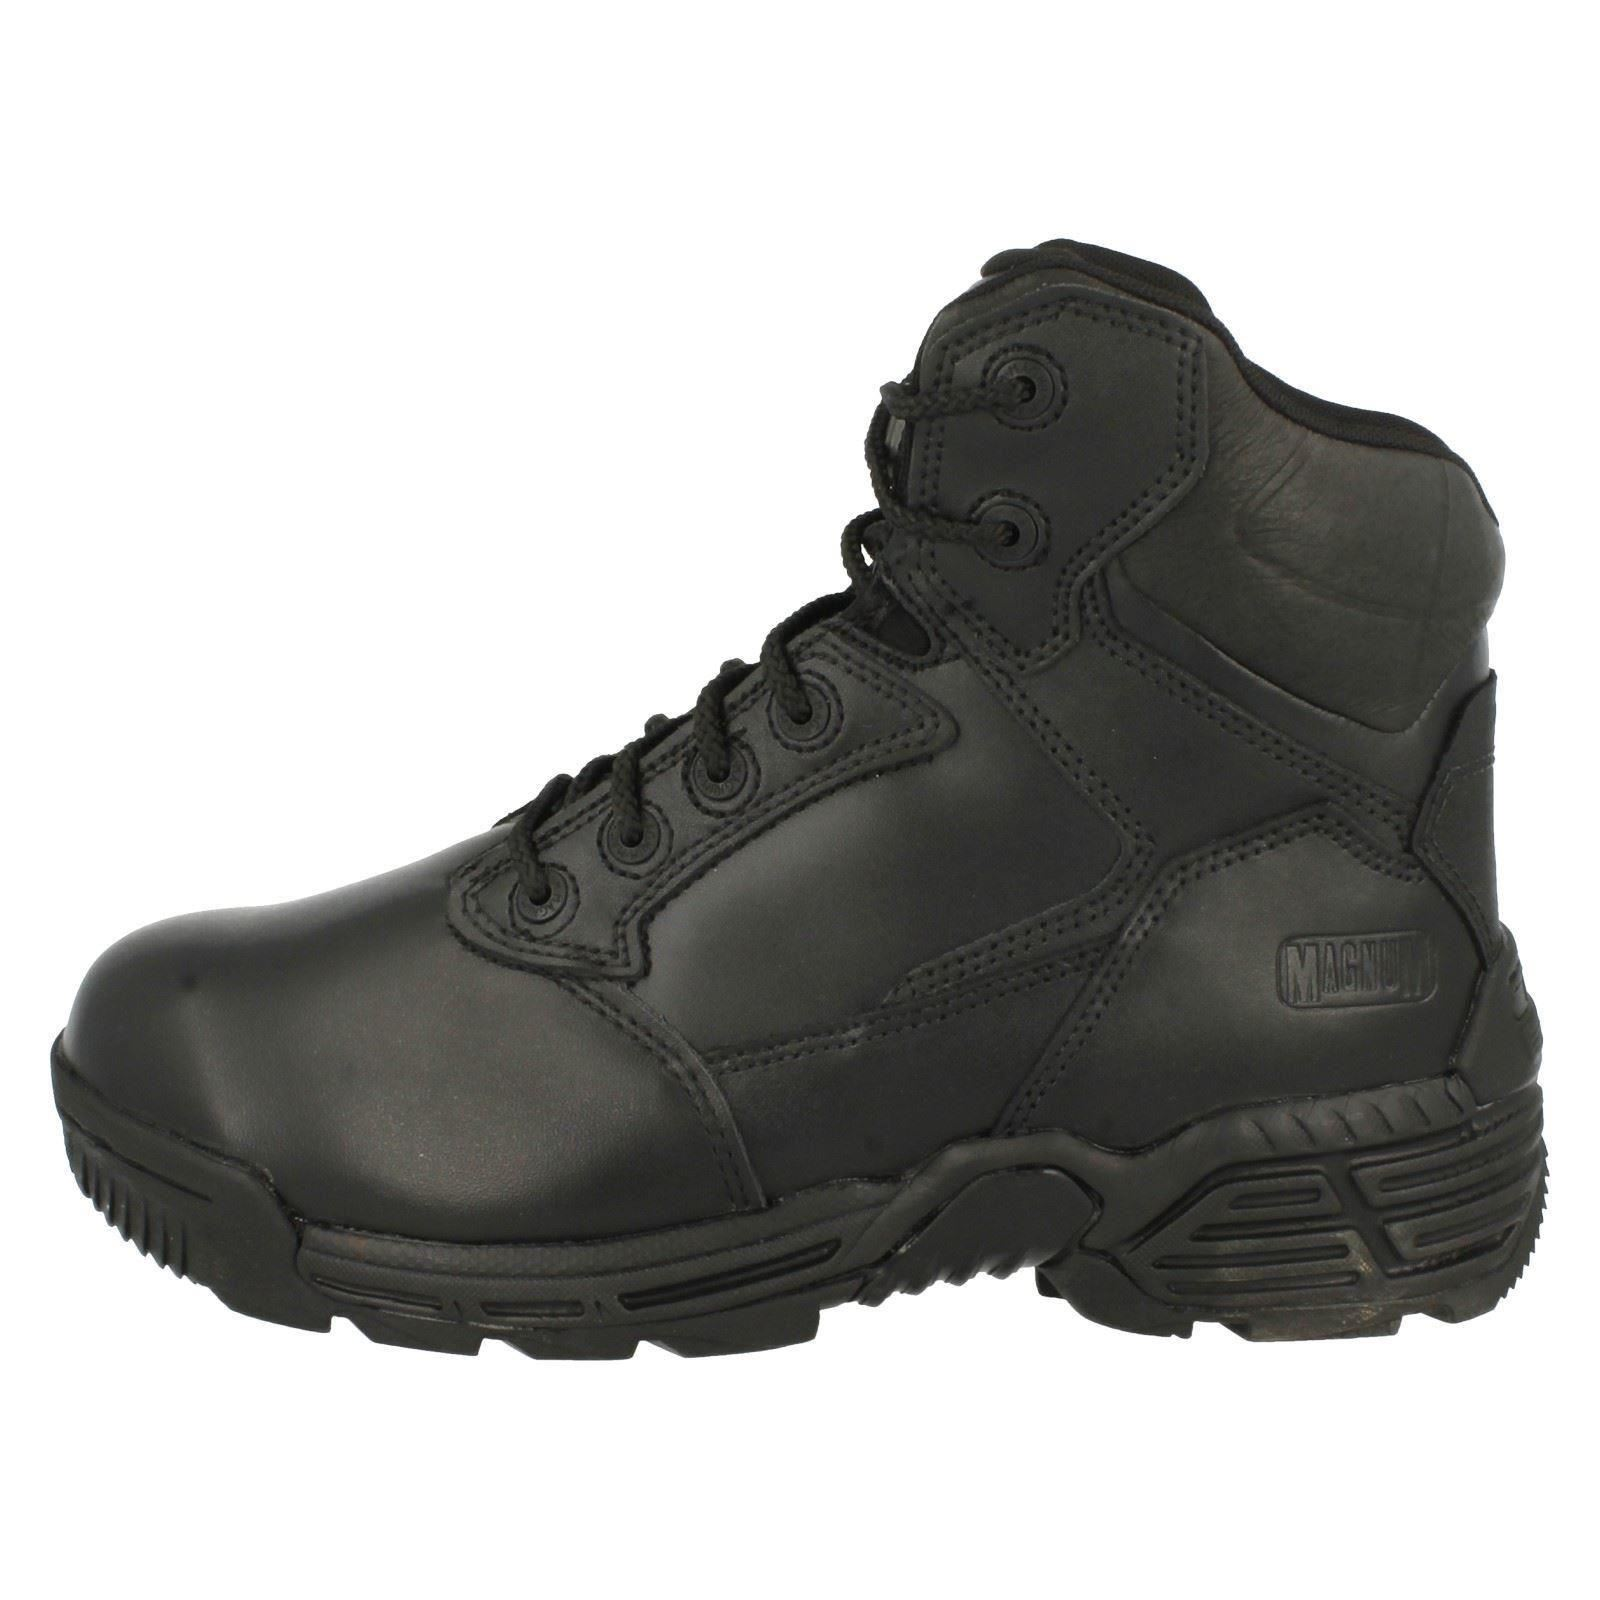 Magnum Stealth lavoro neri Mens Force Up Stivali Lace da d5101qwv